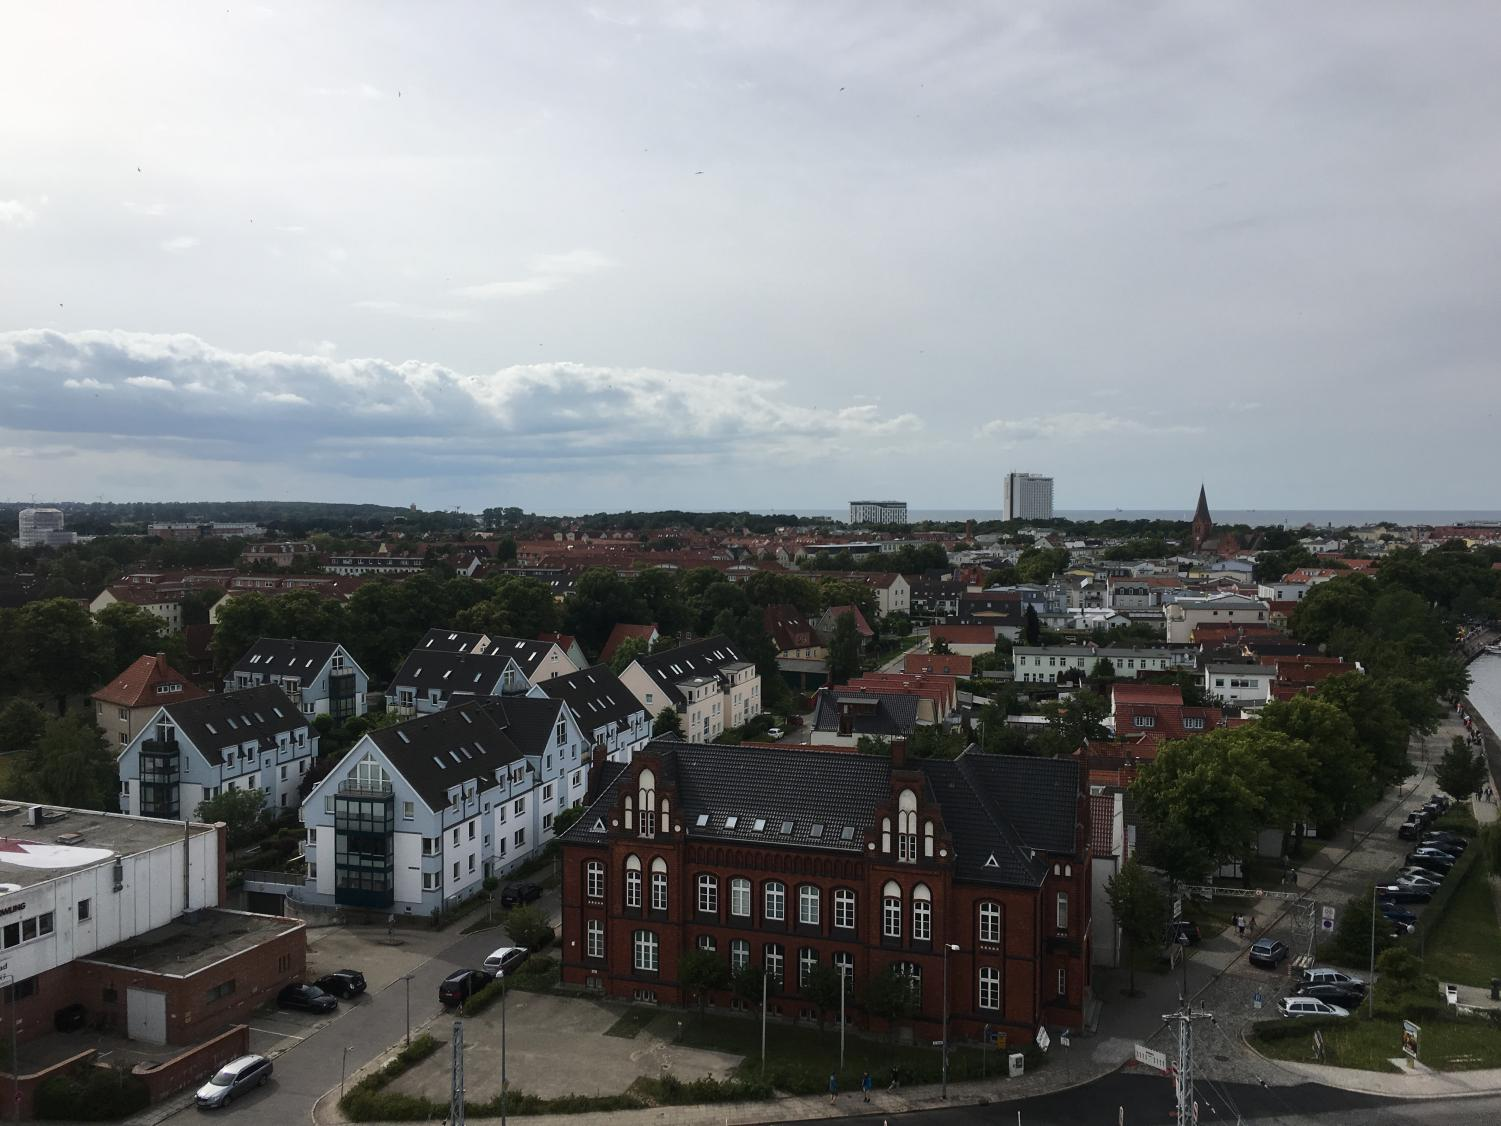 The city of Rostock, Germany on July 9, 2016.